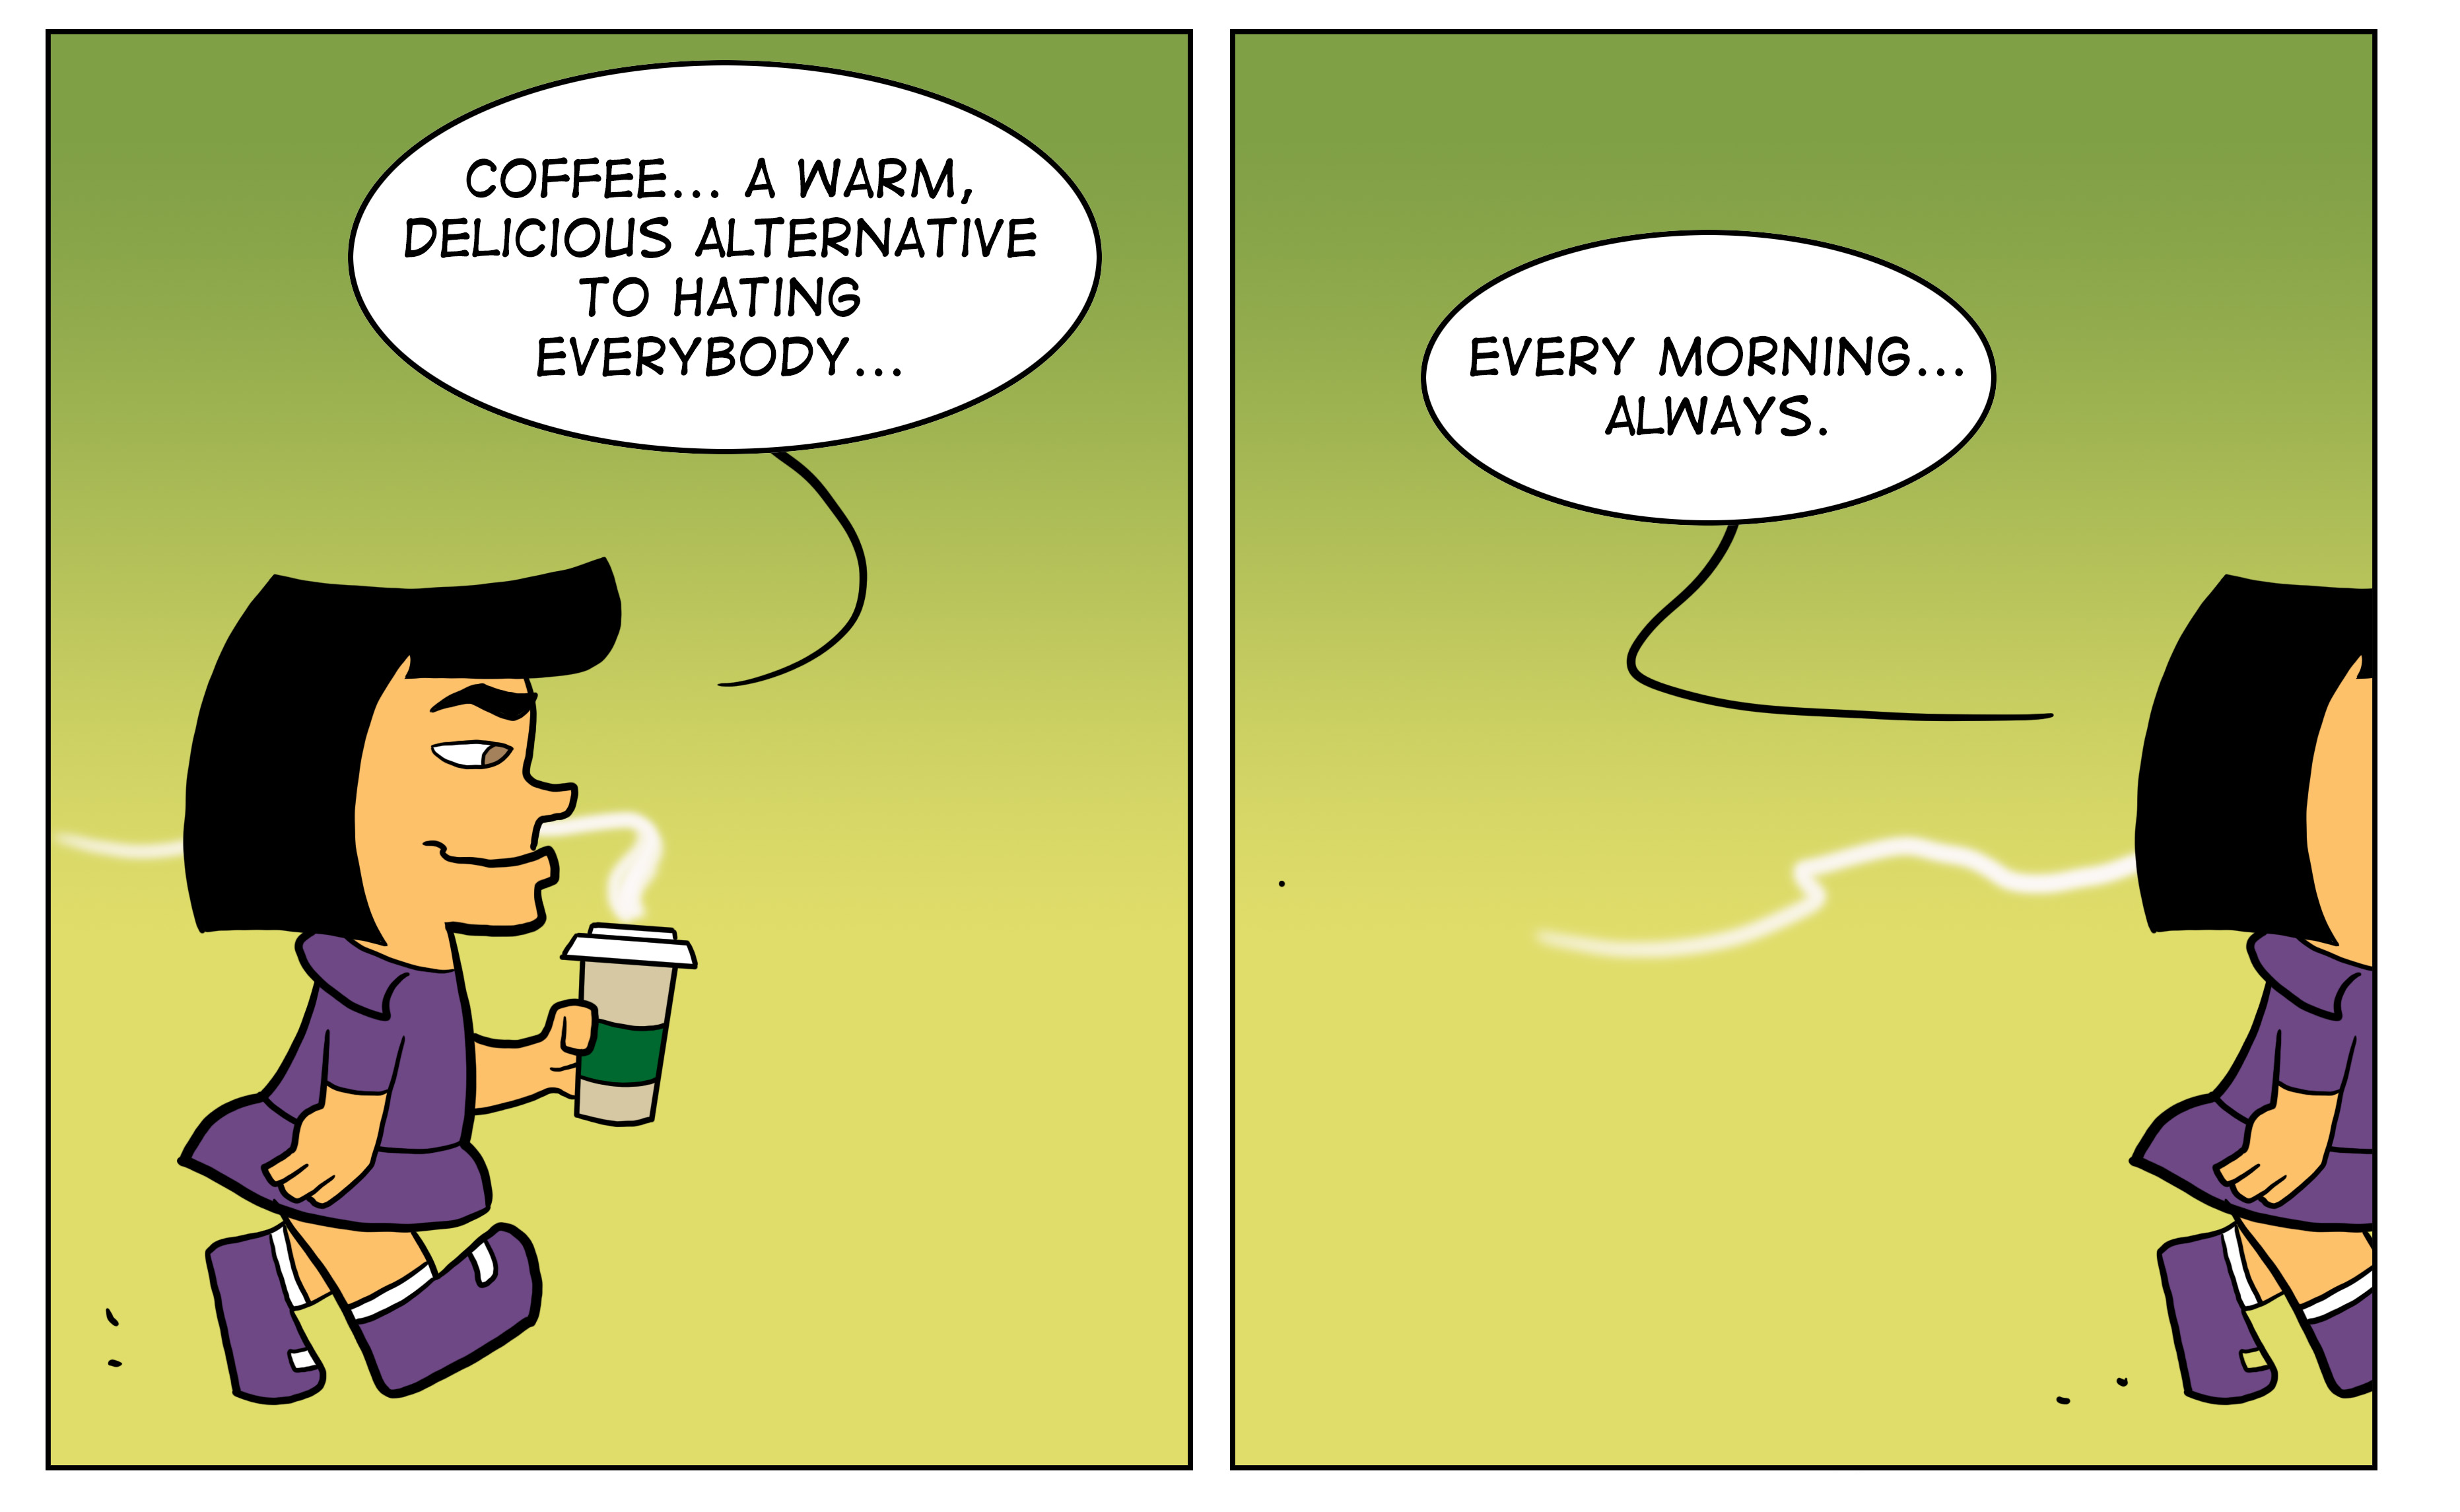 Coffee in the Mornings